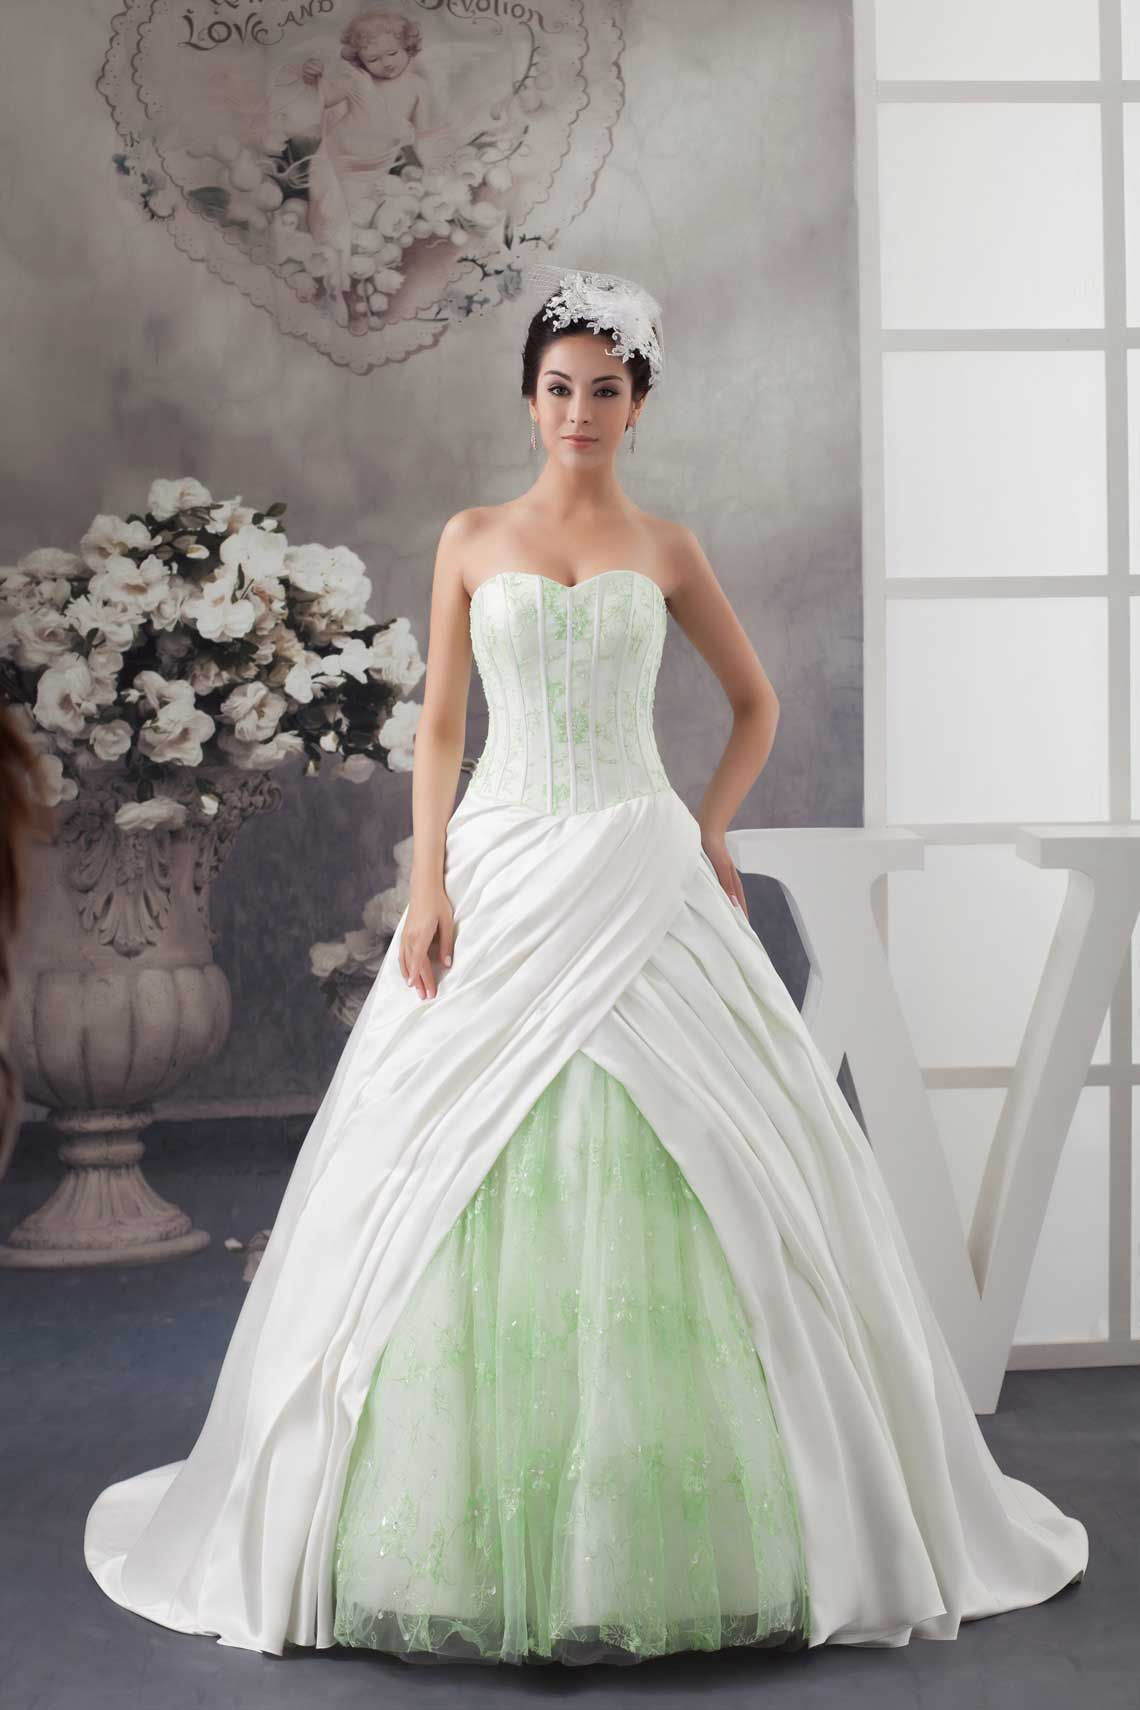 Wedding Green Wedding Dresses 50 colorful wedding dresses non traditional brides will love brit 1000 images about green on pinterest lime weddings and gowns